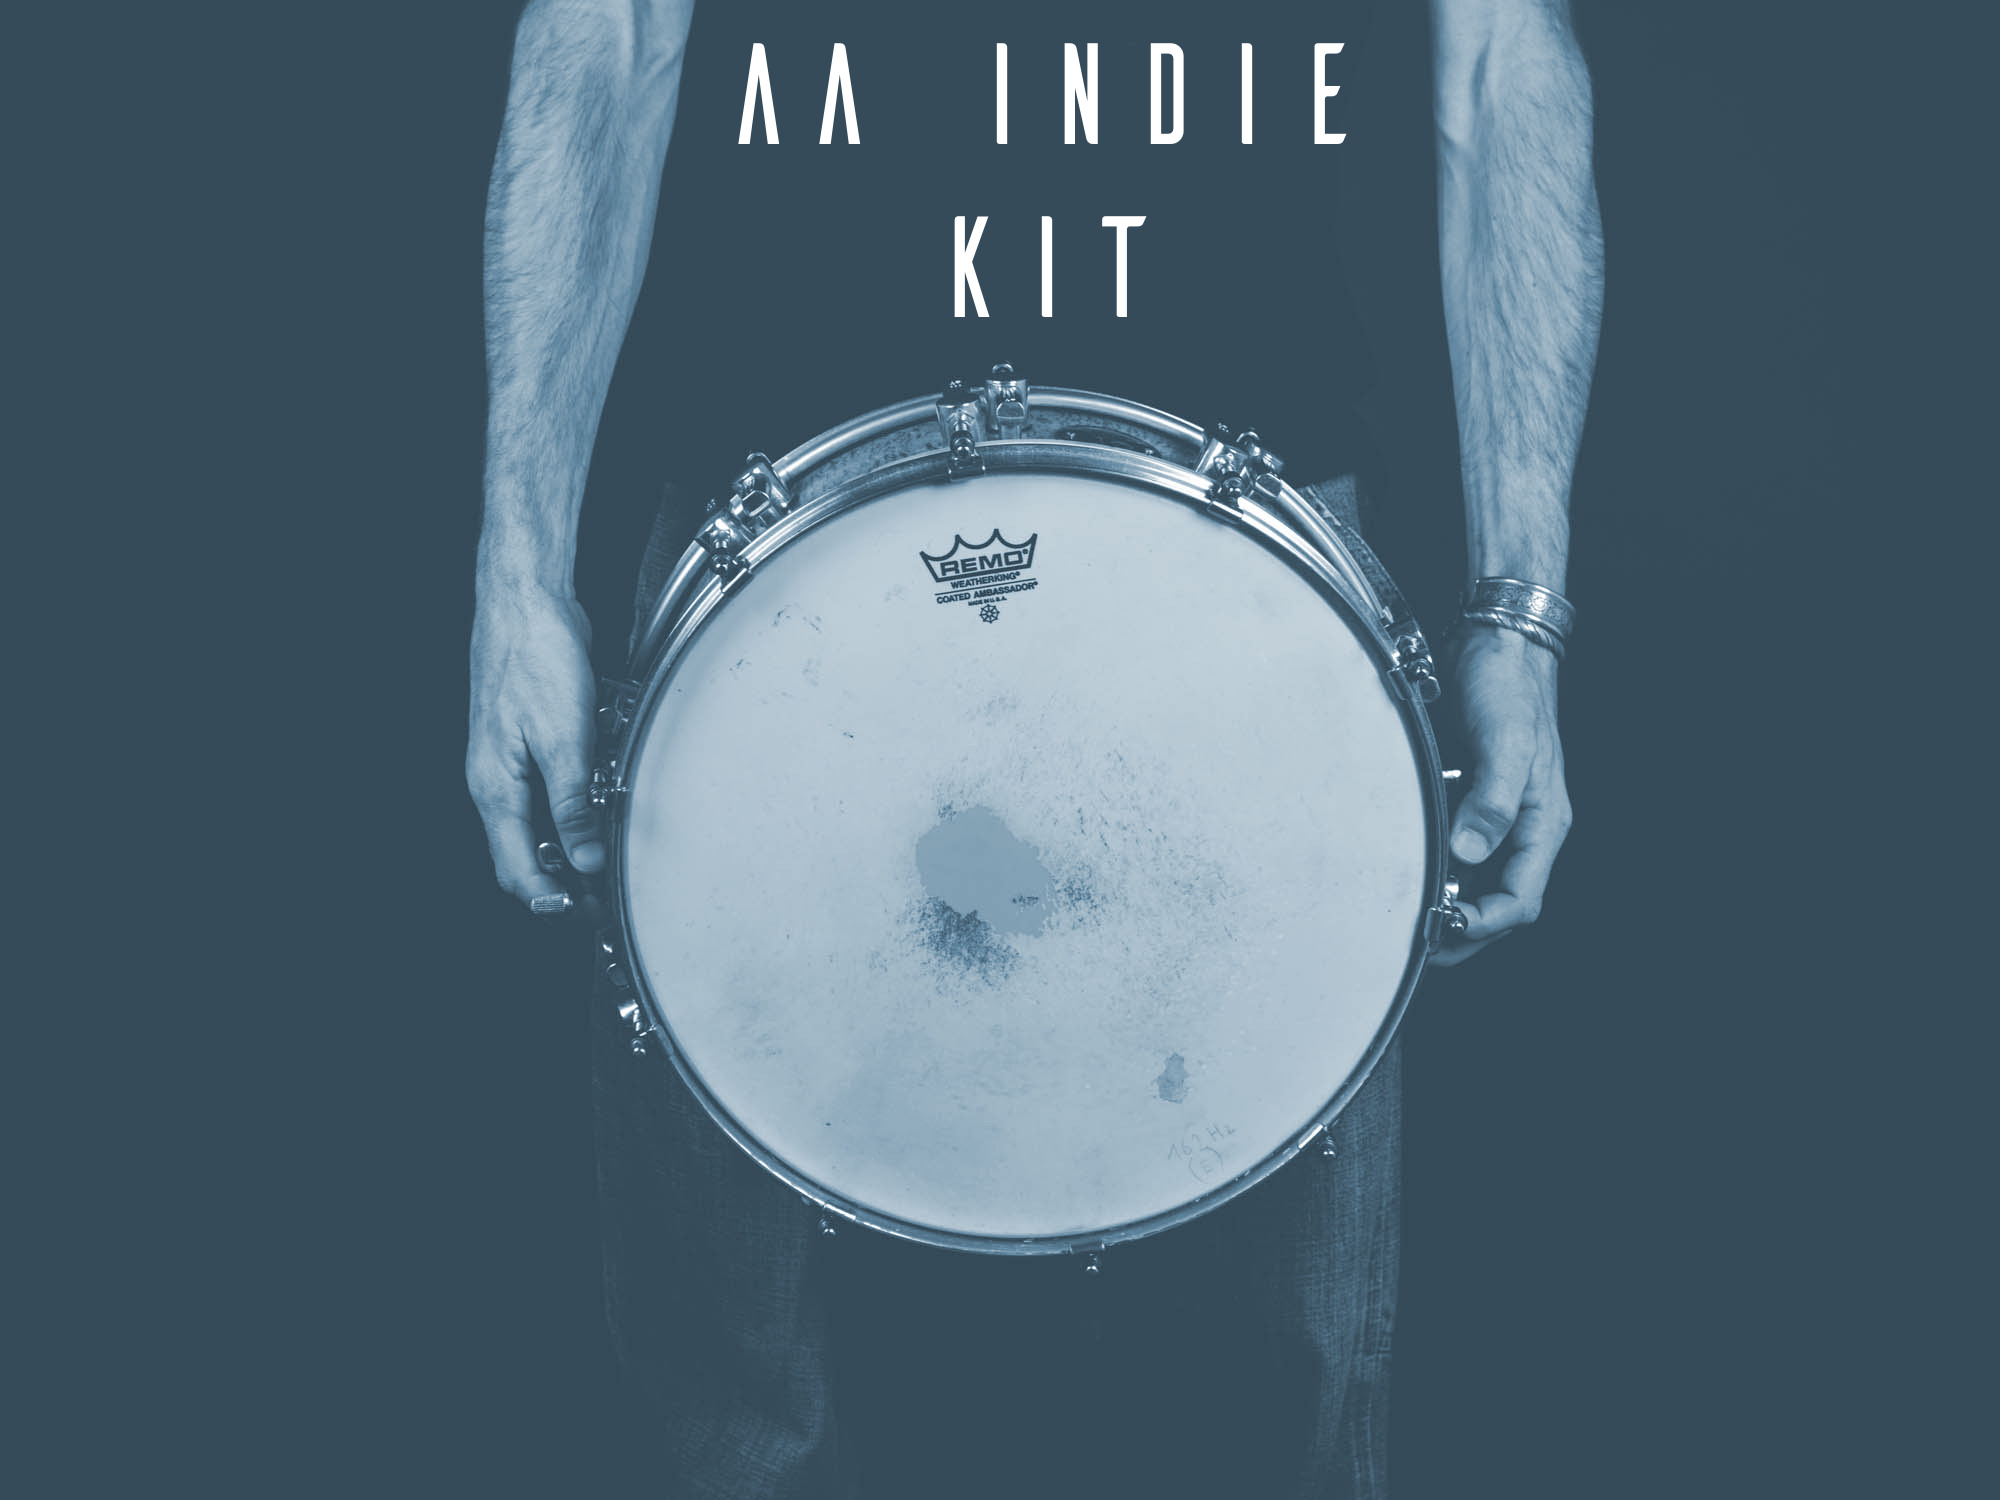 A.A INDIE KIT